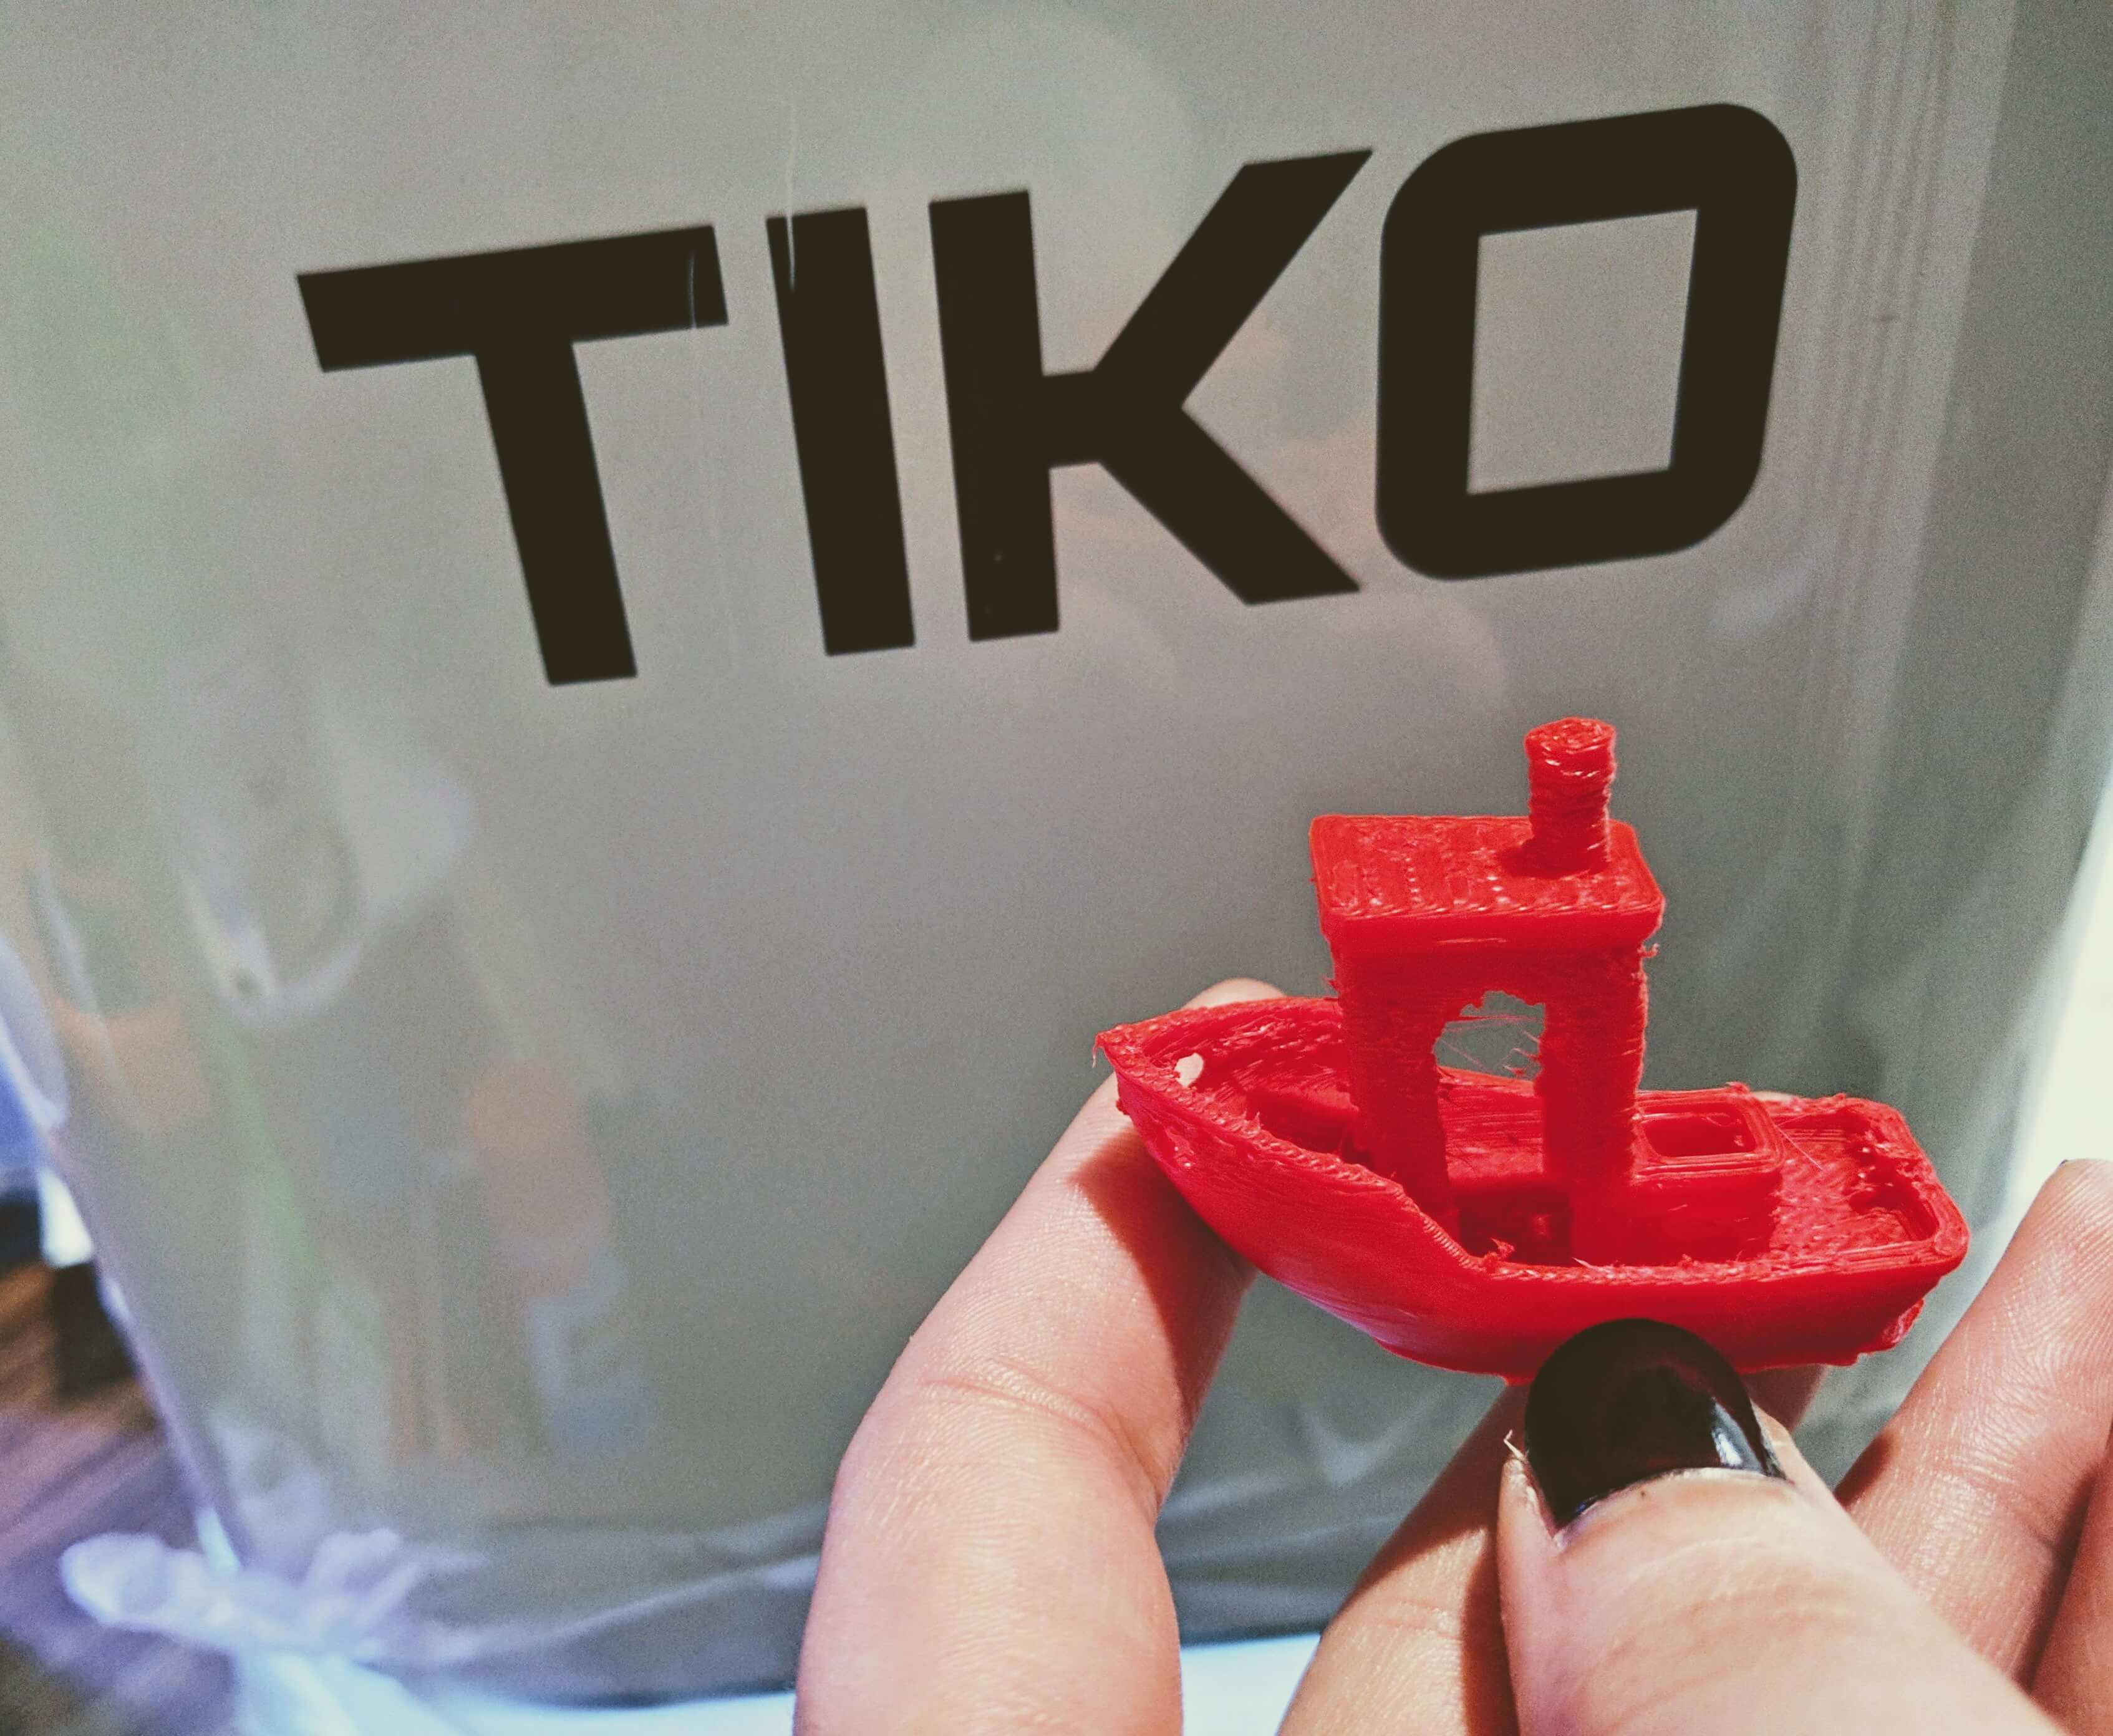 Tiko-with-First Semi-Successful-Benchy-ABS